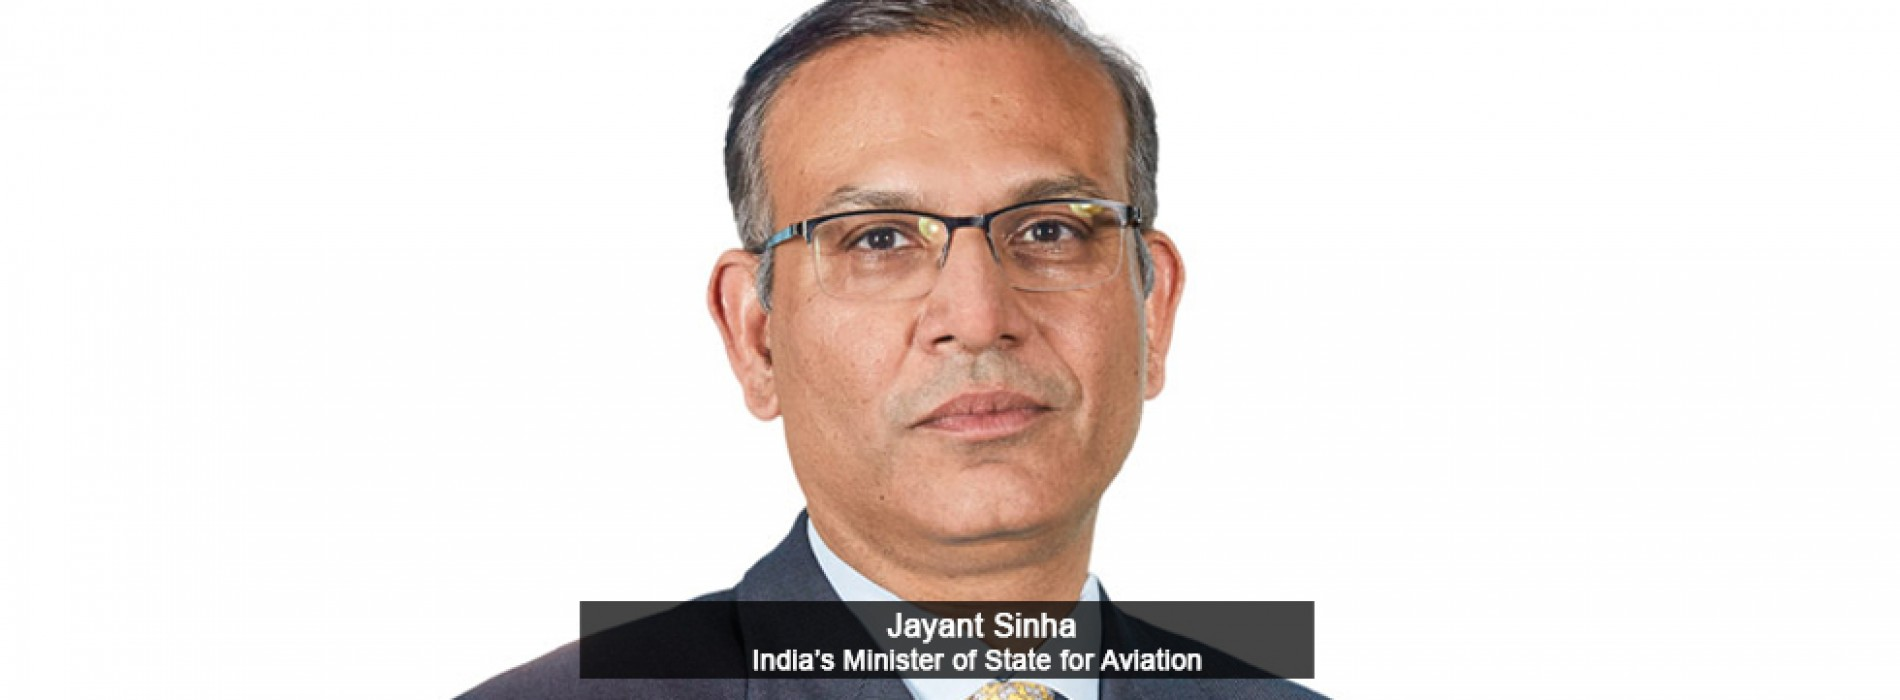 India to provide $31 million support for rural aviation scheme says Jayant Sinha